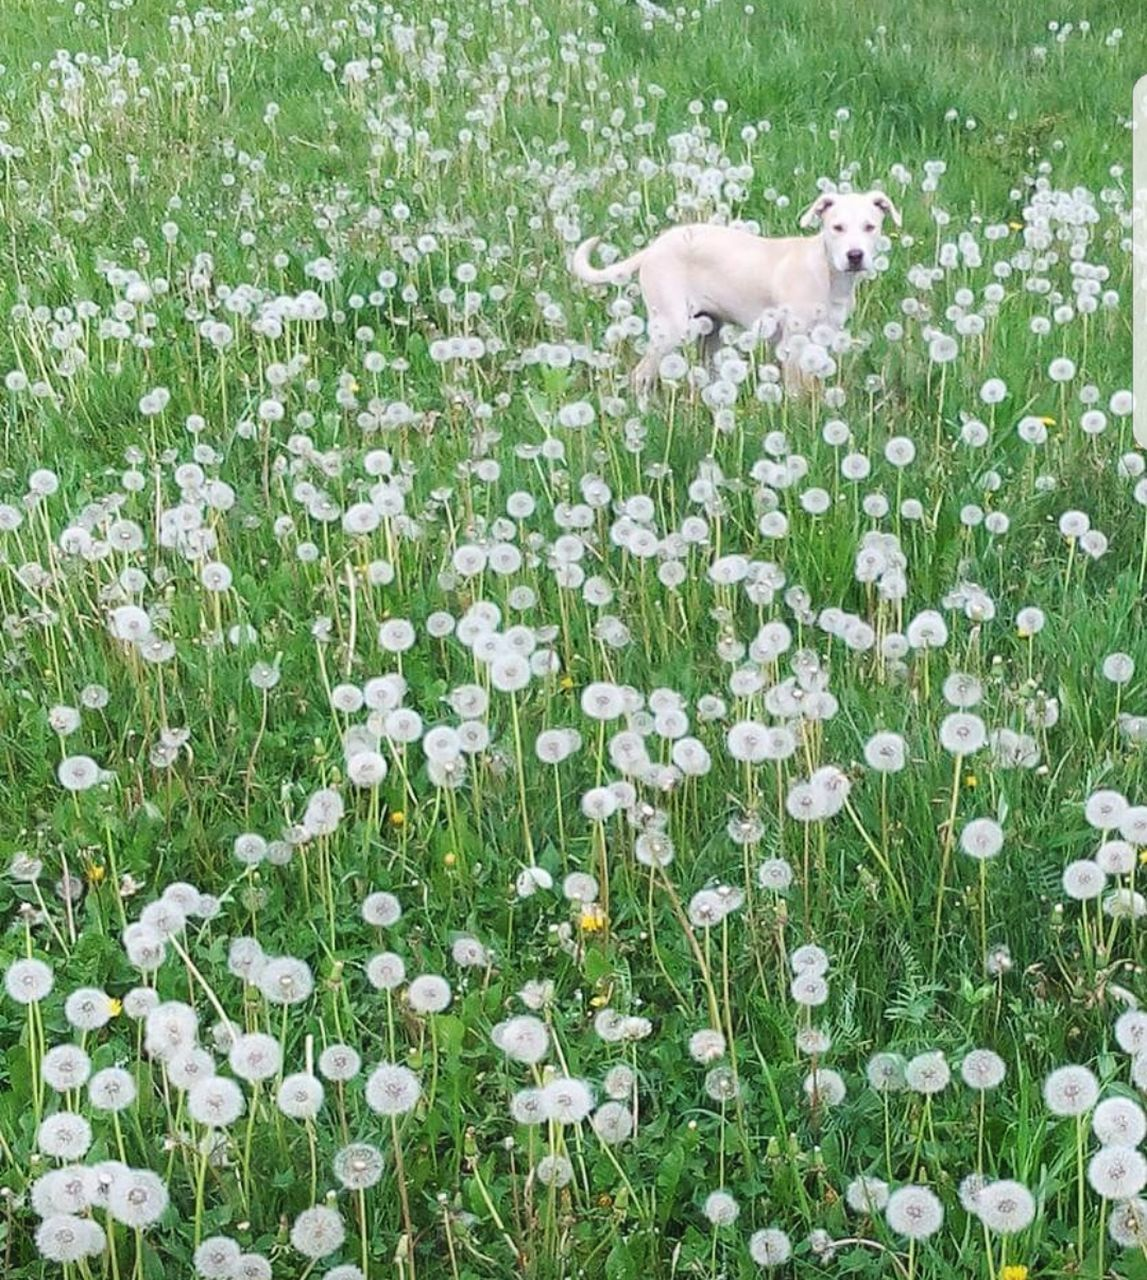 flower, dog, domestic animals, grass, pets, nature, growth, field, animal themes, one animal, plant, mammal, no people, outdoors, green color, day, beauty in nature, fragility, blooming, freshness, flower head